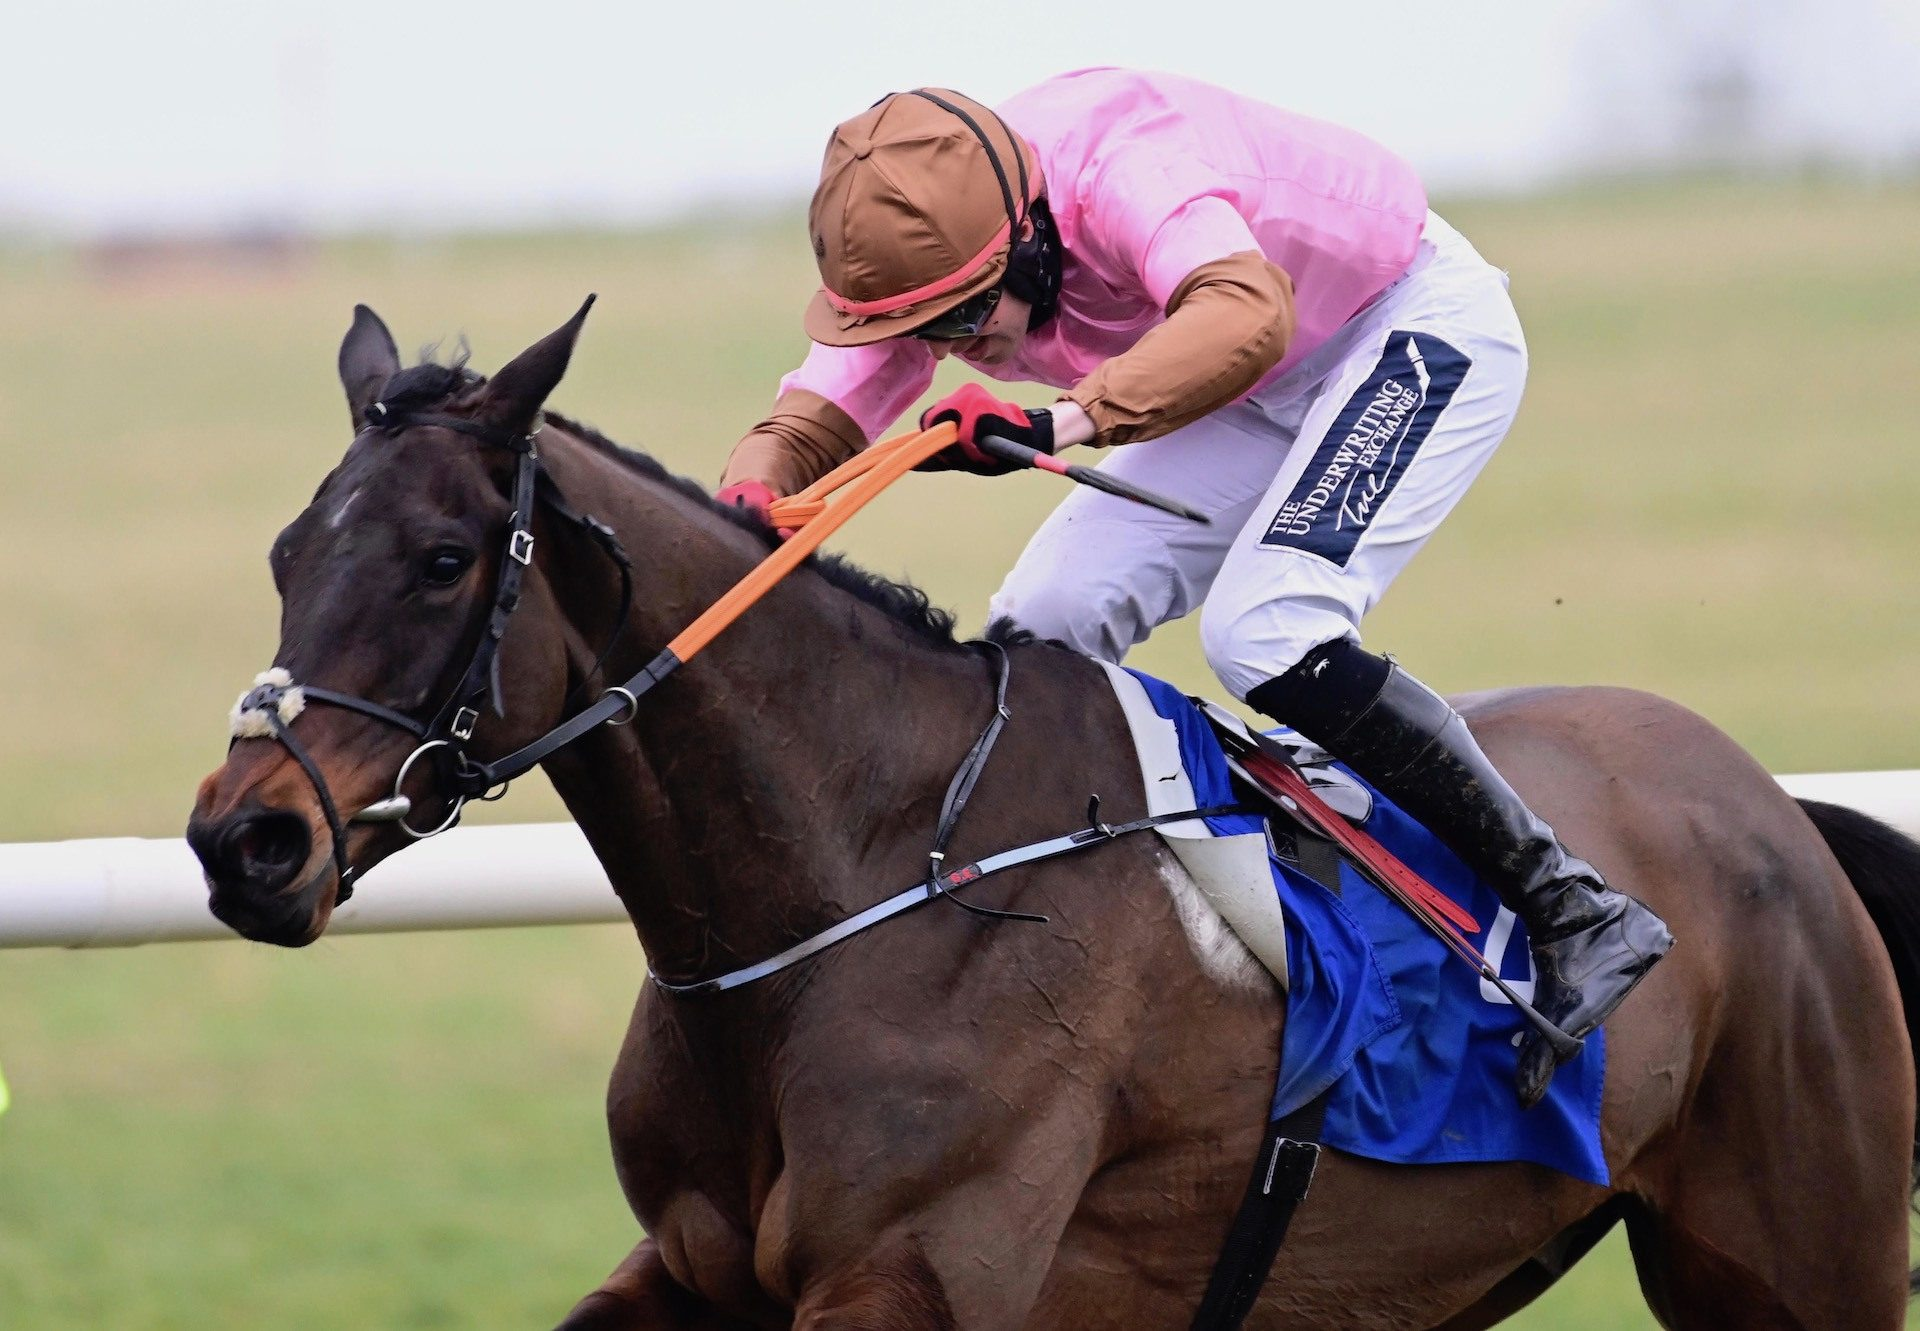 Dunboyne (Yeats) Wins His Maiden Hurdle At Thurles